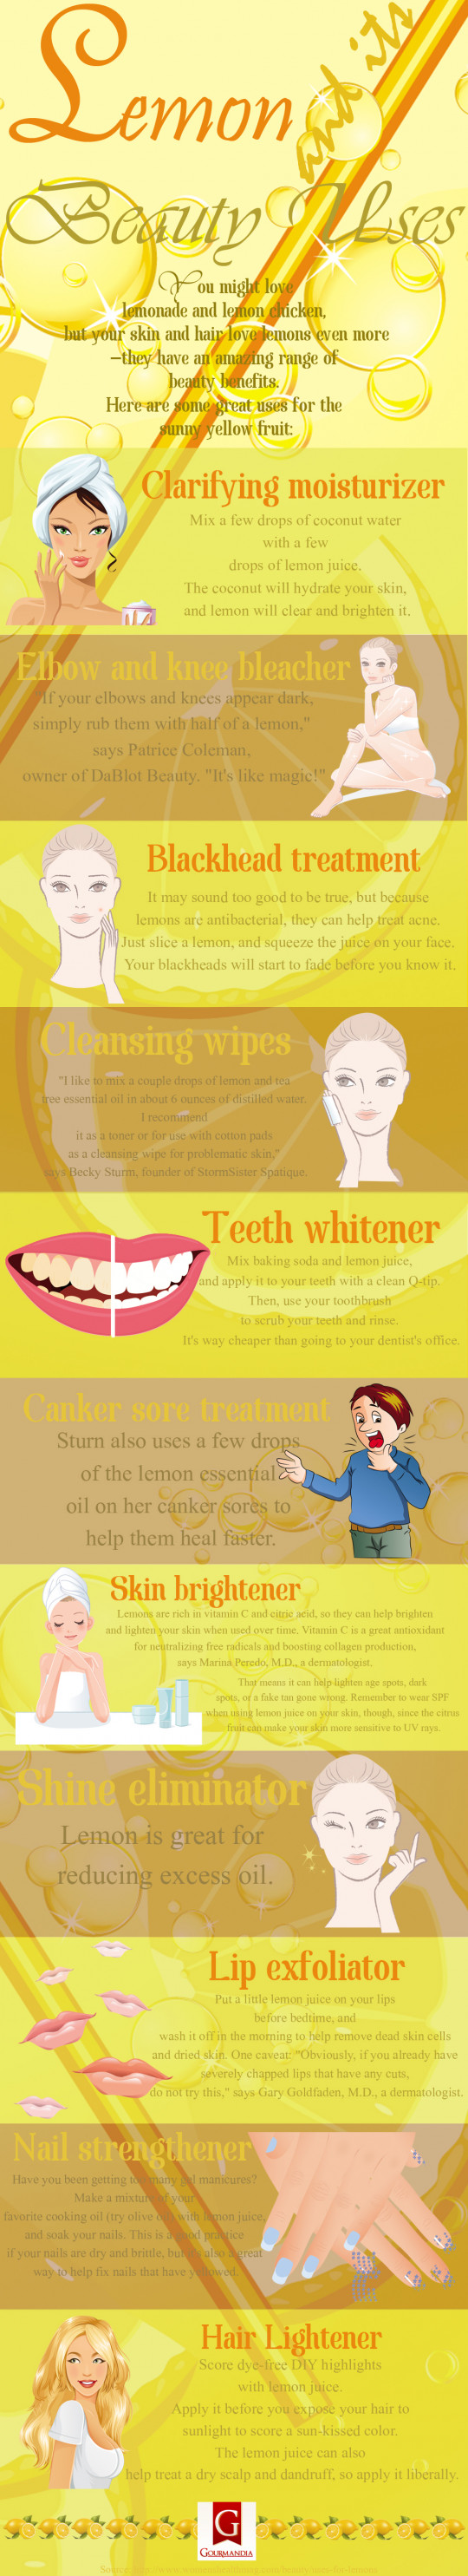 Lemon and Its Beauty Uses